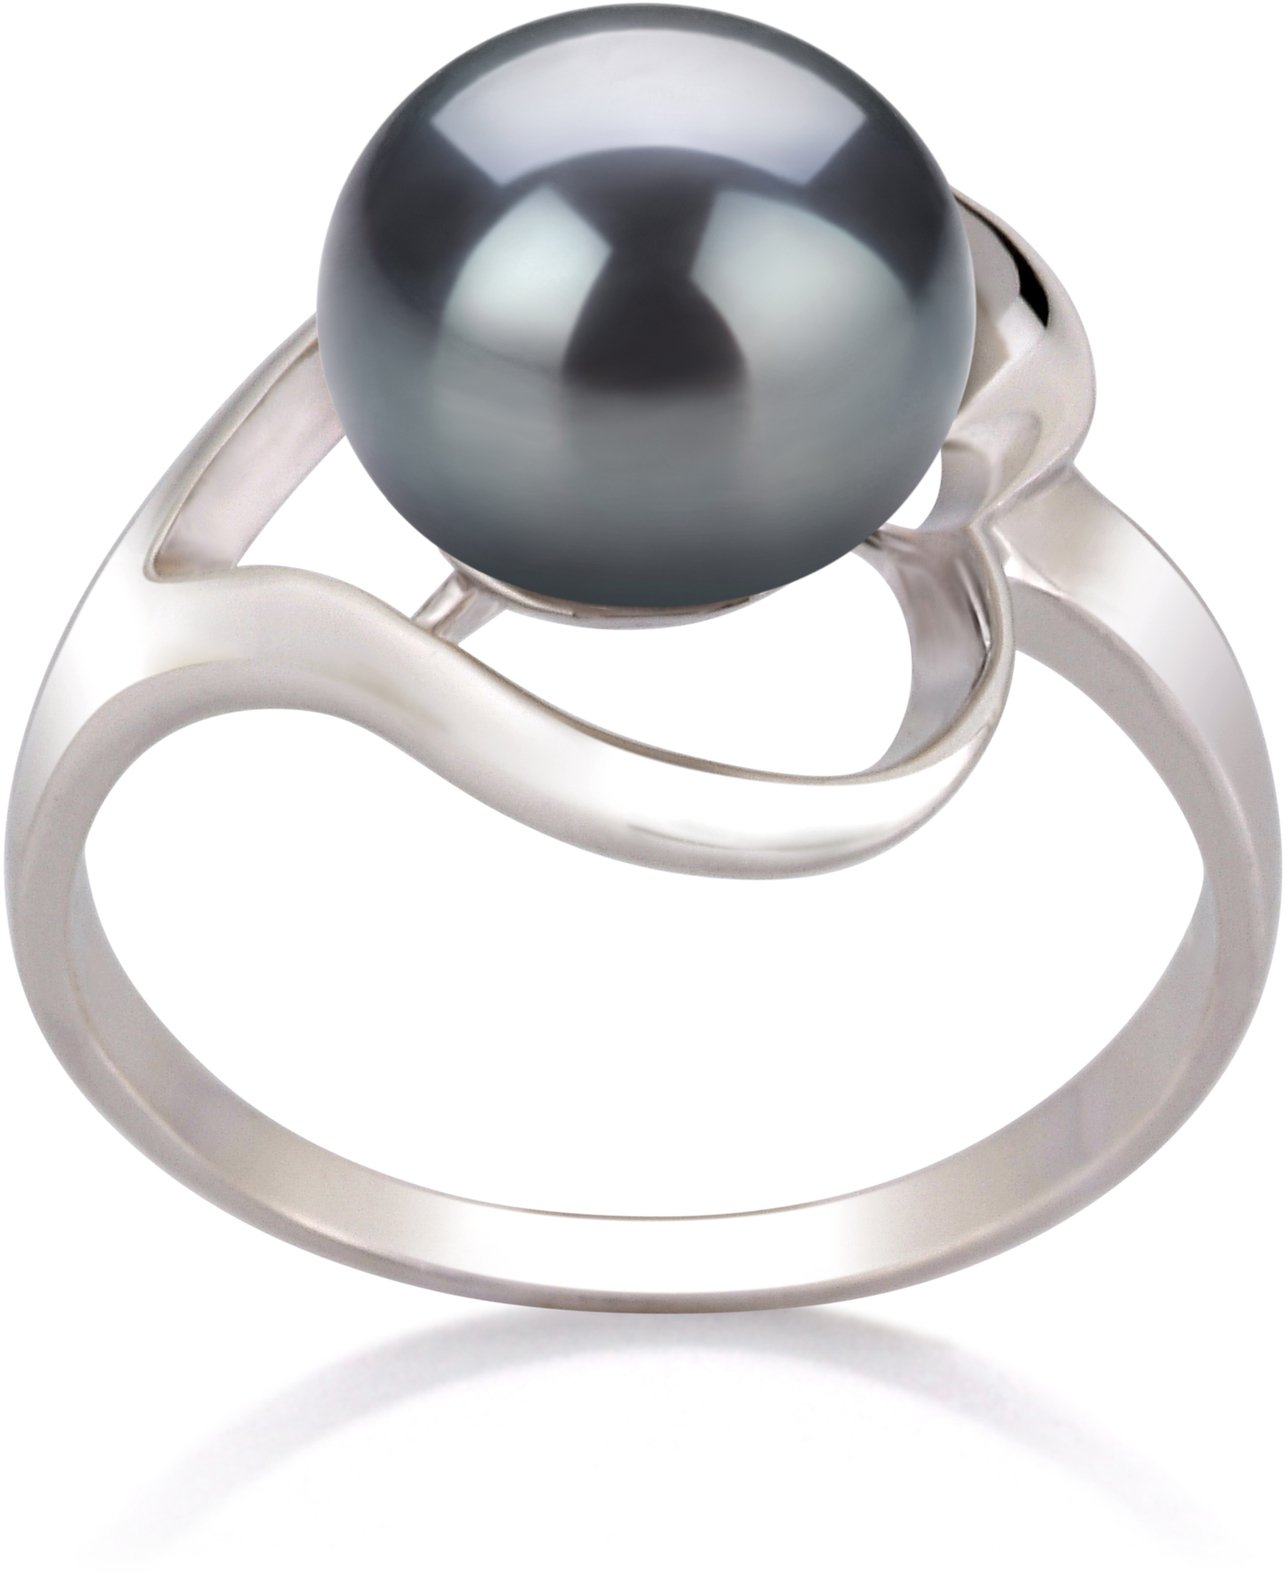 Sadie Black 9-10mm AA Quality Freshwater 925 Sterling Silver Cultured Pearl Ring - Size-6